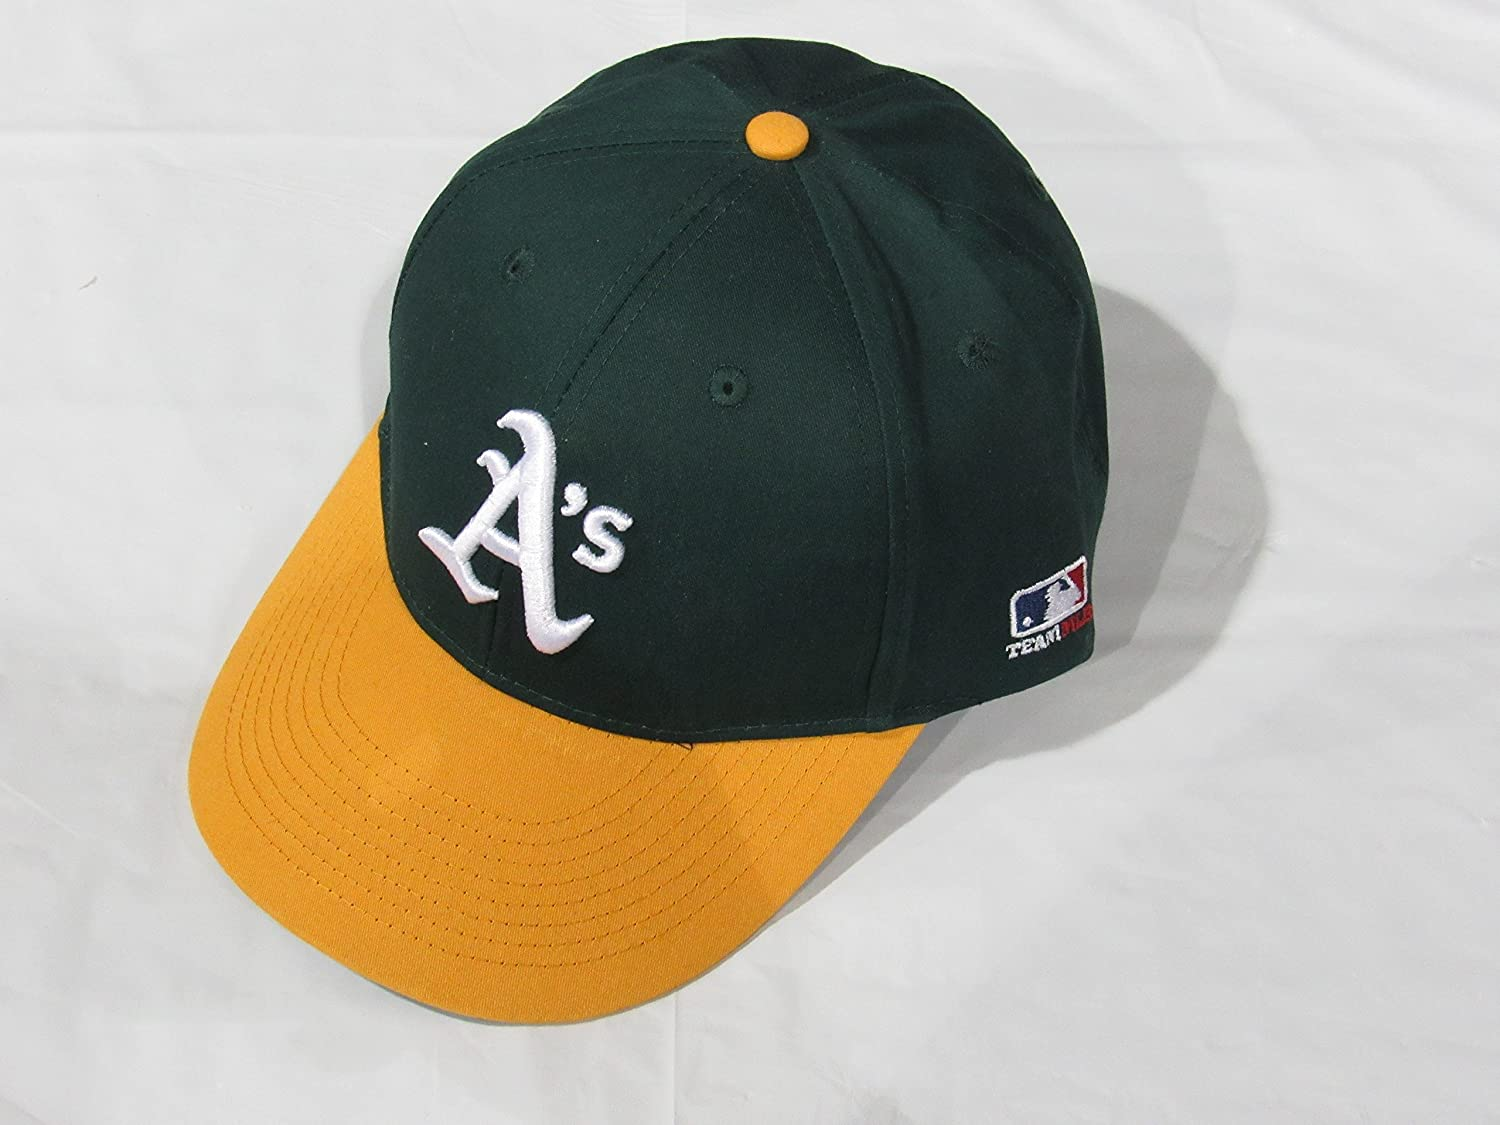 4b16da44973 Amazon.com   Oakland Athletics A s (Home - Green Yellow) ADULT Adjustable Hat  MLB Officially Licensed Major League Baseball Replica Ball Cap   Sports Fan  ...